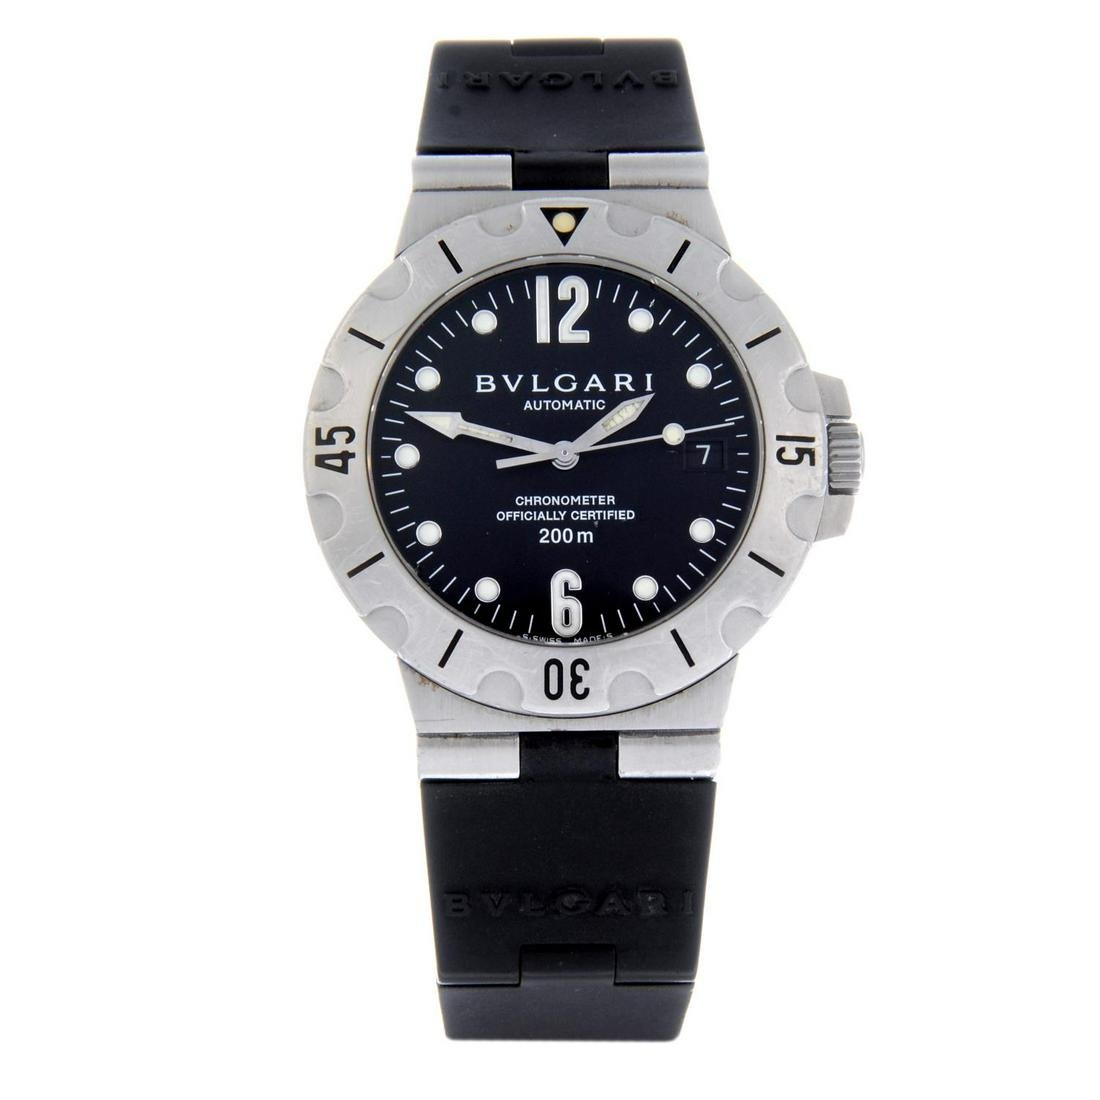 BULGARI - a gentleman's Diagono Scuba wrist watch.